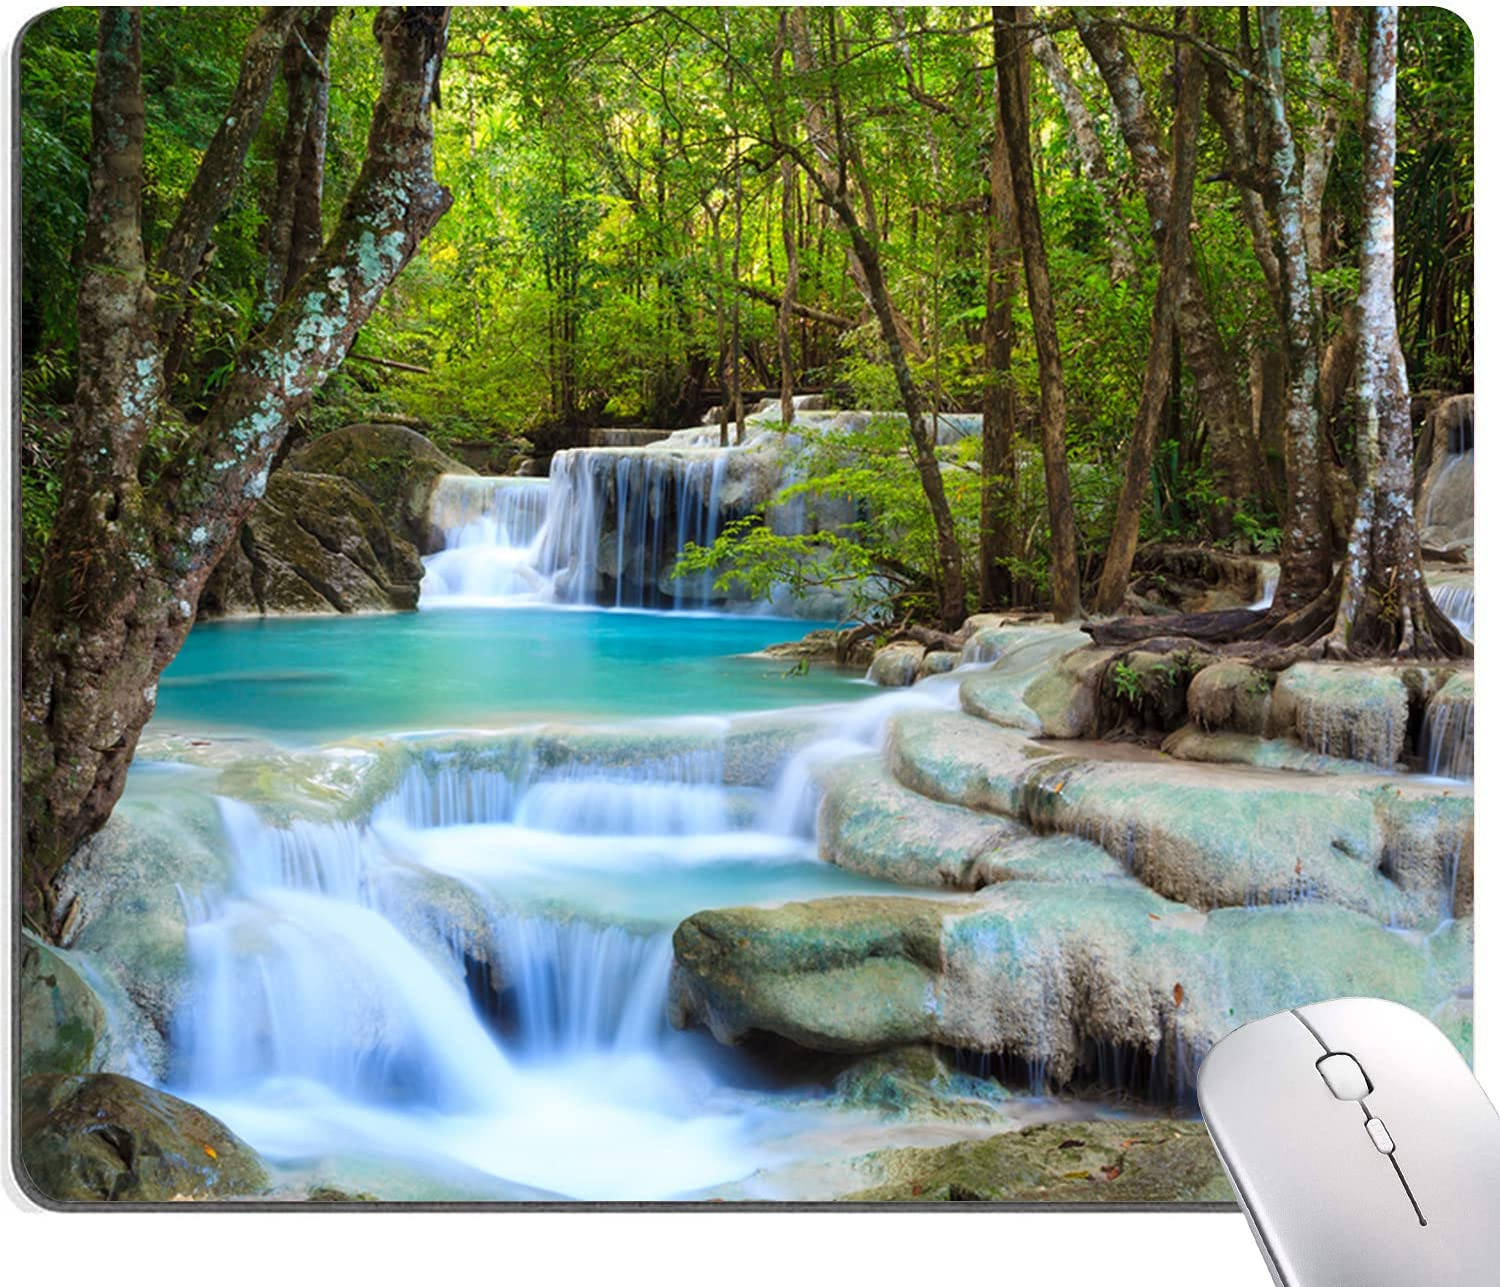 Waterfalls Forest Creek Indefinitely Mouse Pad Mesa Mall Mat Landscape Sq Trees